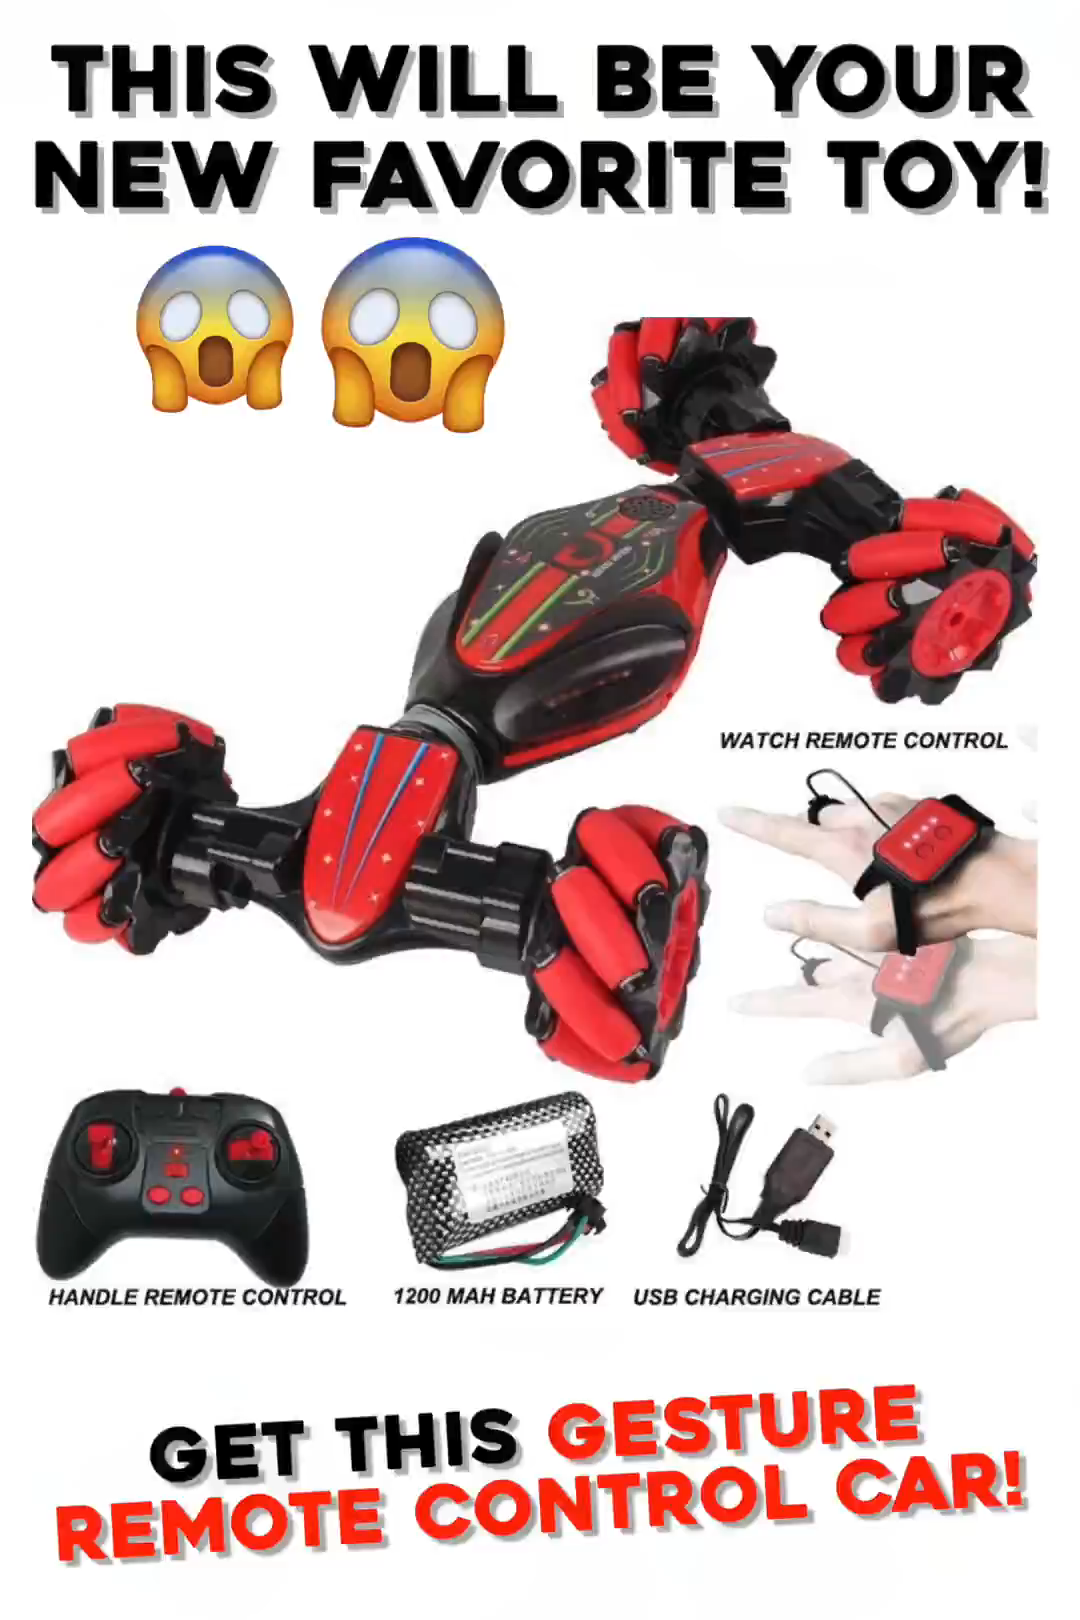 Gesture Controlled RC Car